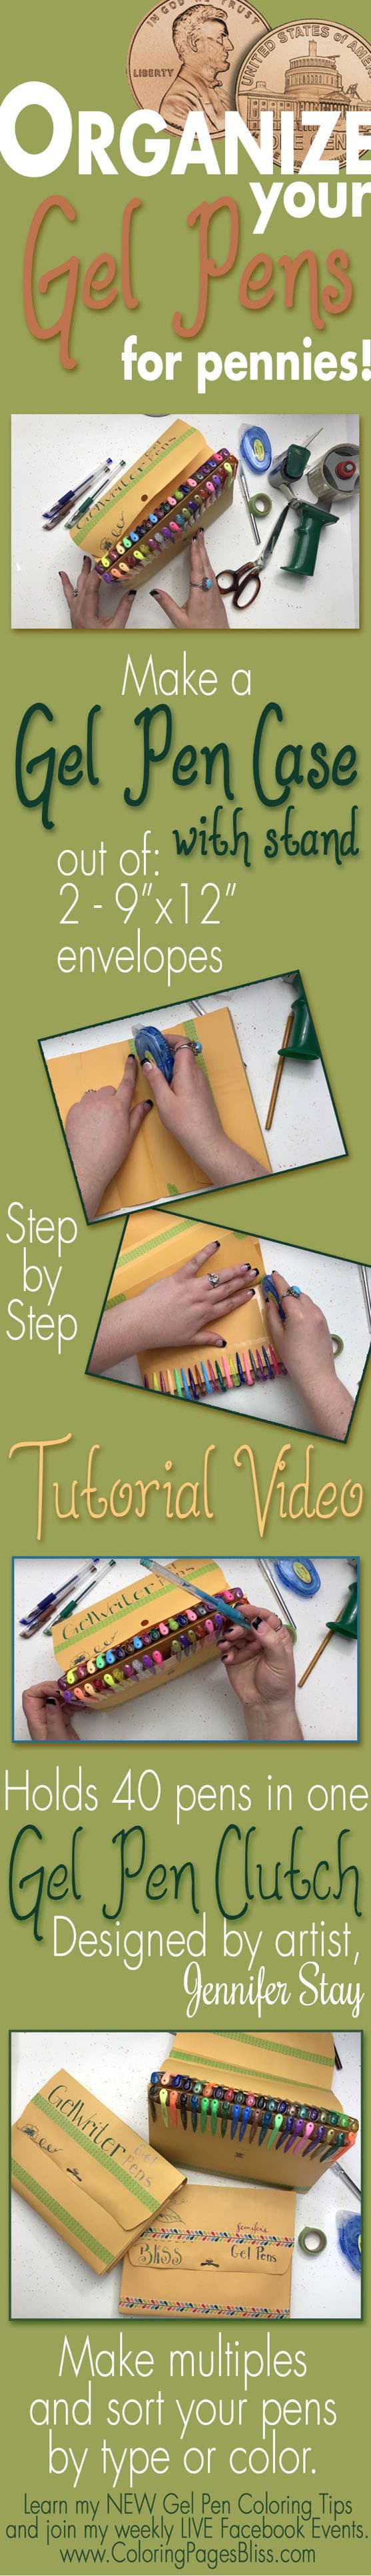 How to Make a Gel Pen Case